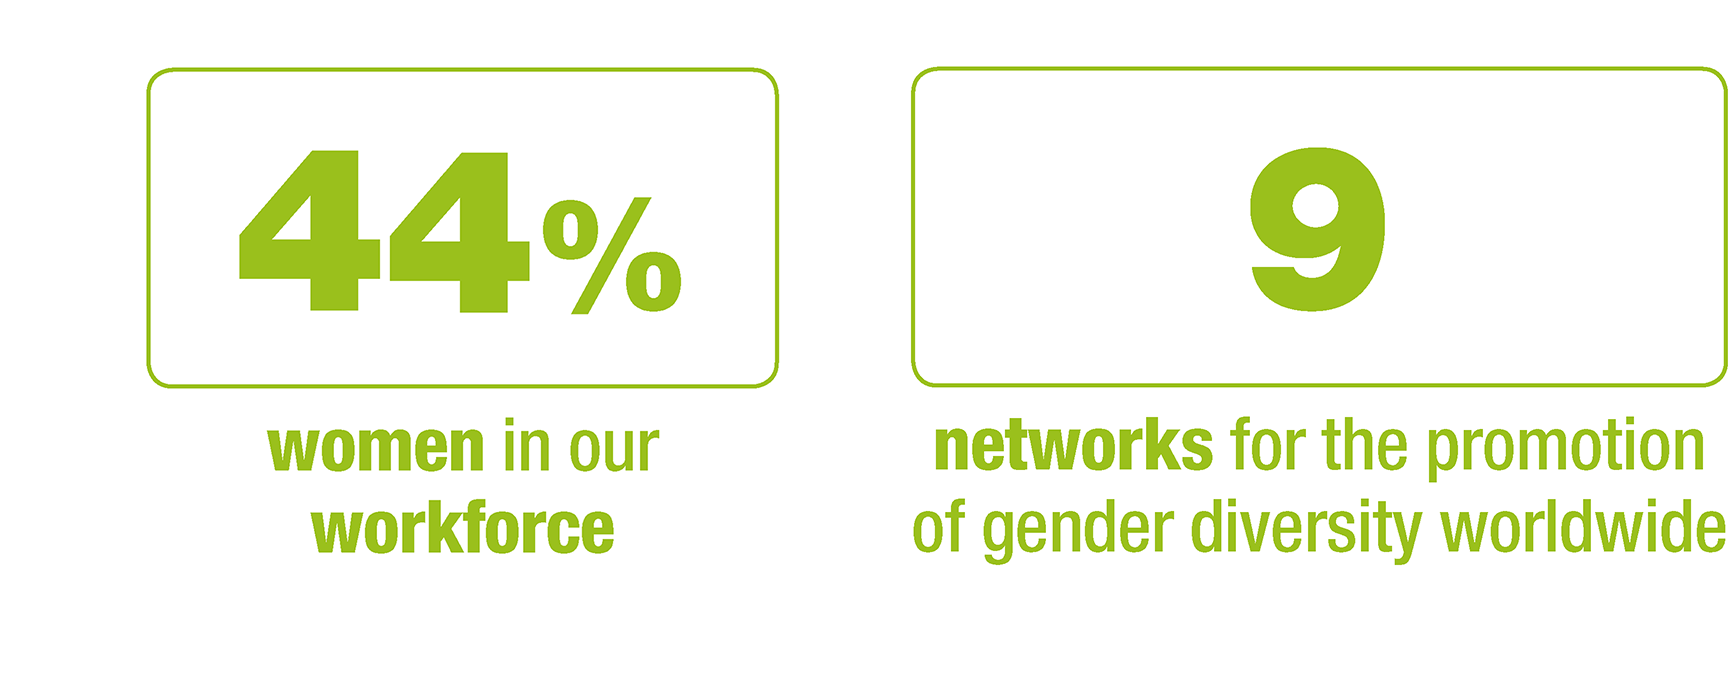 44% of women in our workforce, 9 networks for the promotion of gender diversity worldwide